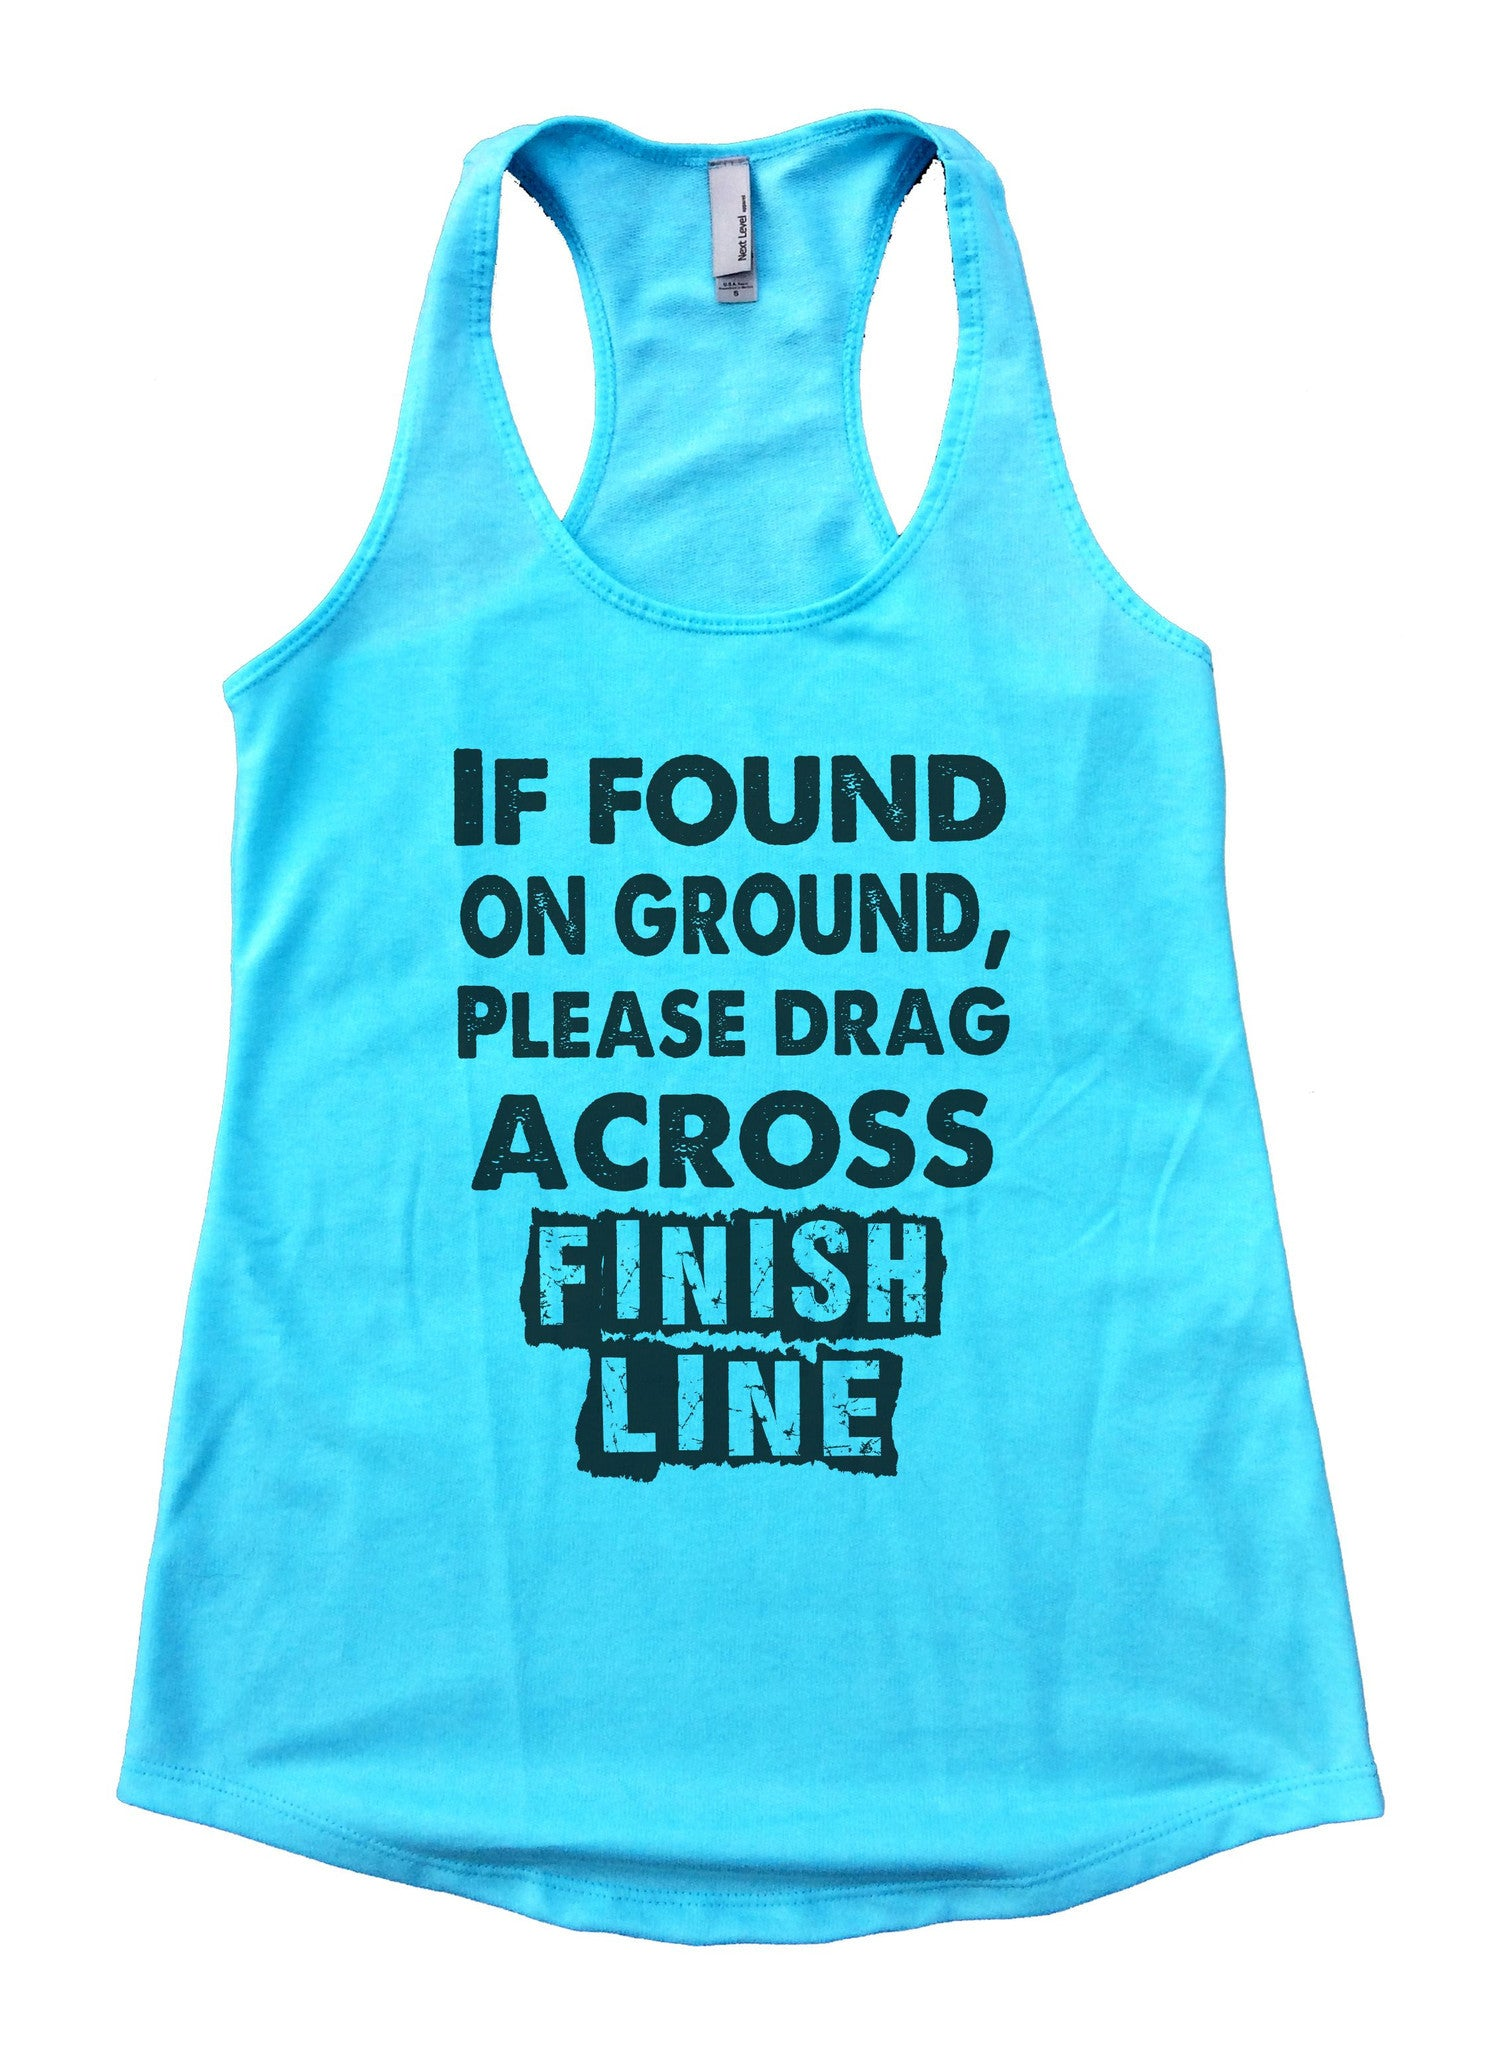 If Found On Ground, Please Drag Across Finish Line Womens Workout Tank Top F667 - Funny Shirts Tank Tops Burnouts and Triblends  - 1